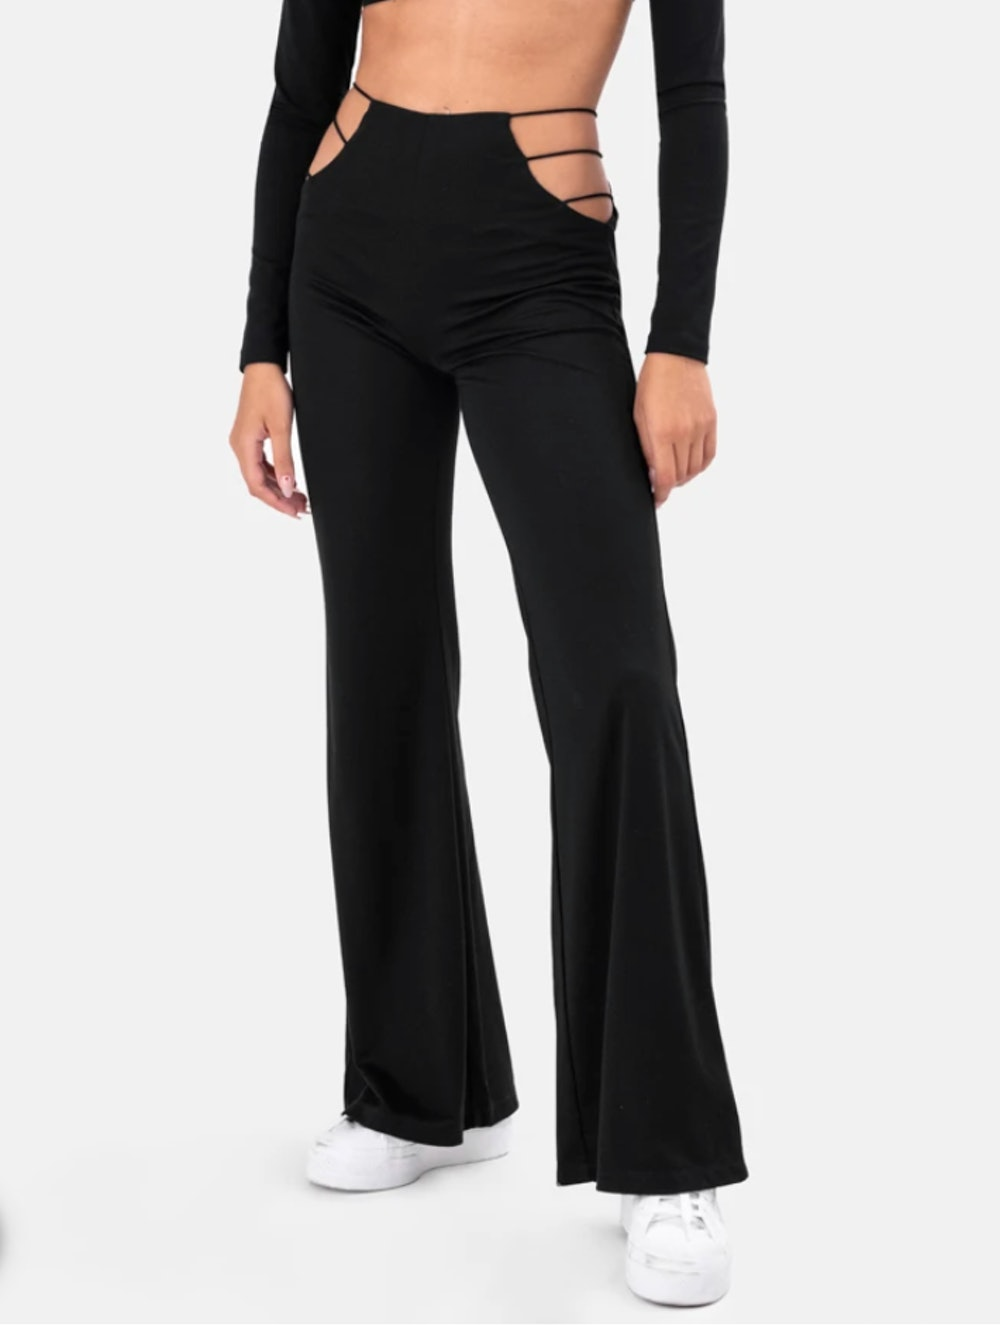 Empire Flare Cut-Out Pants